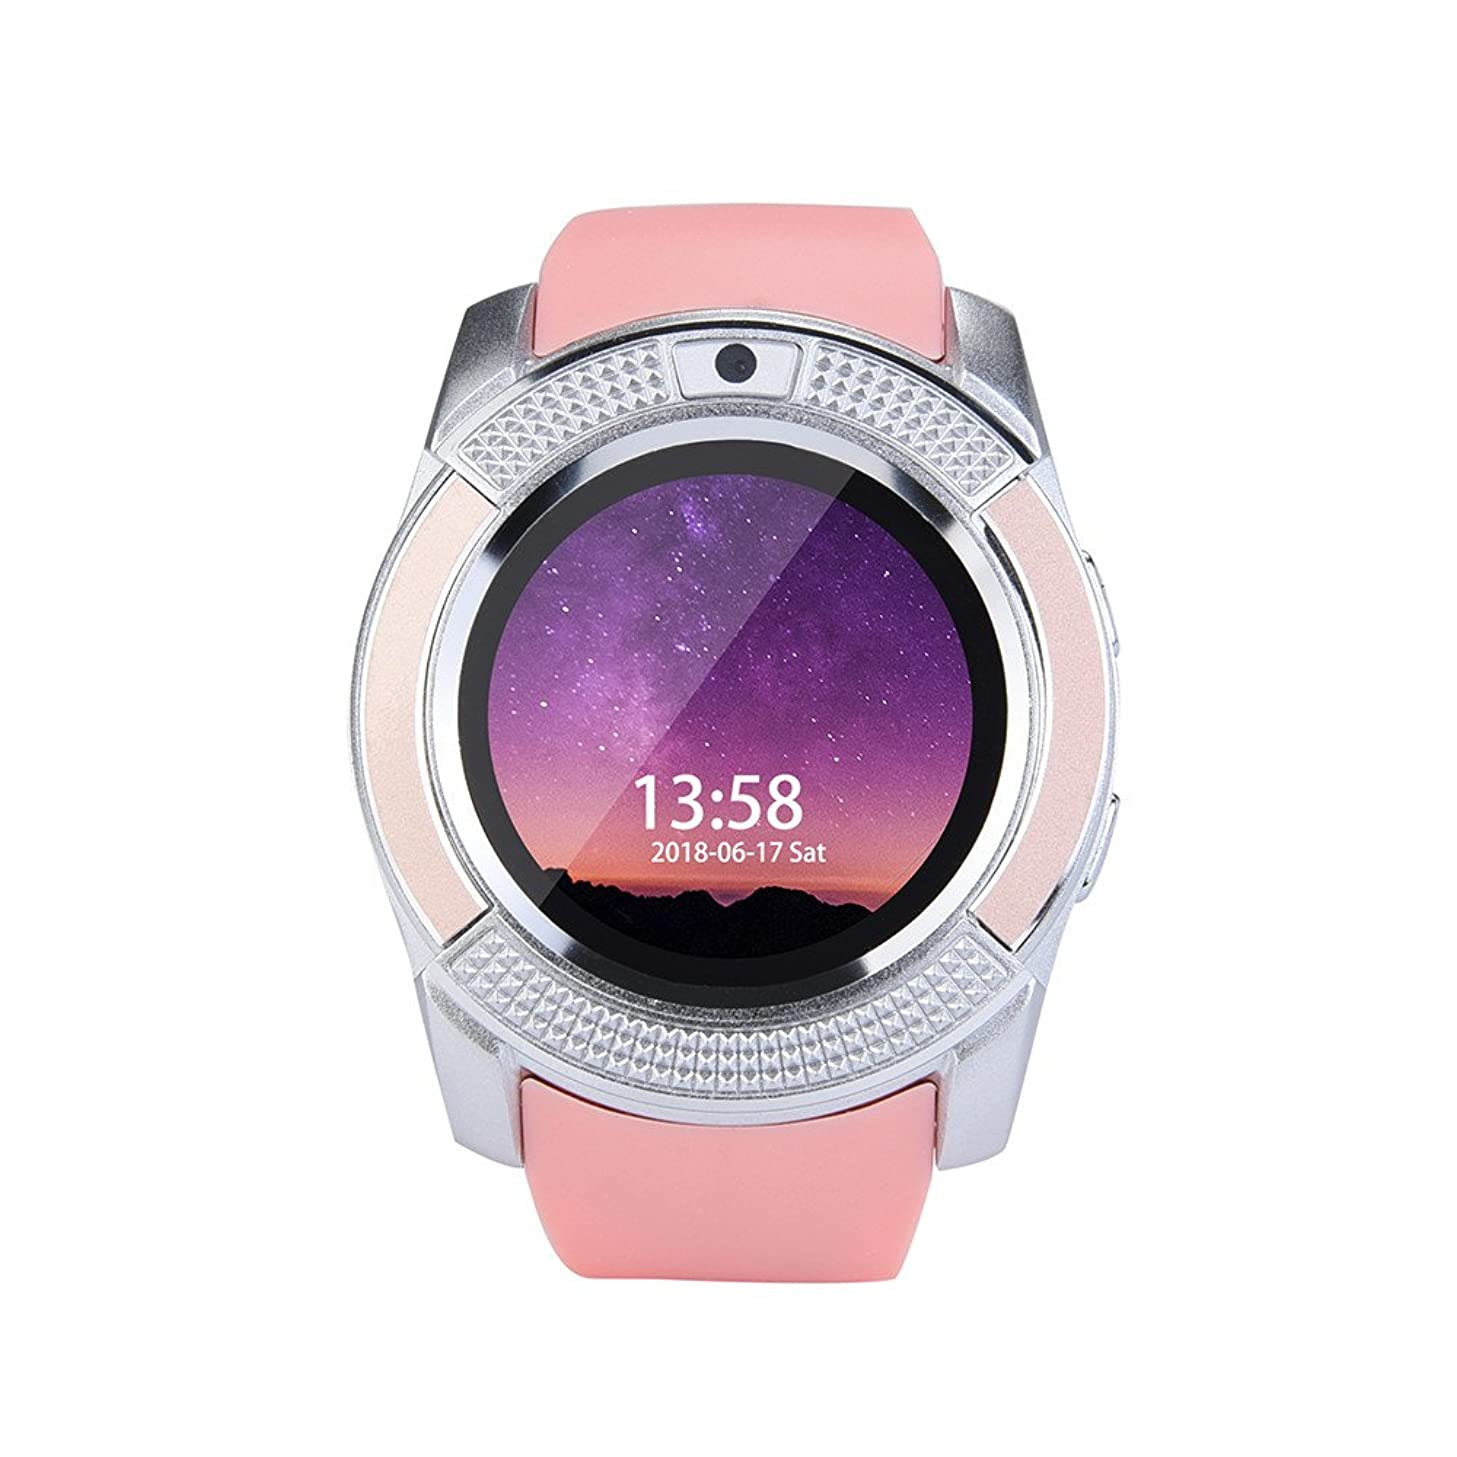 NXDA 2018 V8 Kids Digital Anti-Lost Smart Watch Wrist Watch GSM 2G SIM Phone Mate For IOS Android Smartphone The Safest Guarantee for Your Kids (Pink)